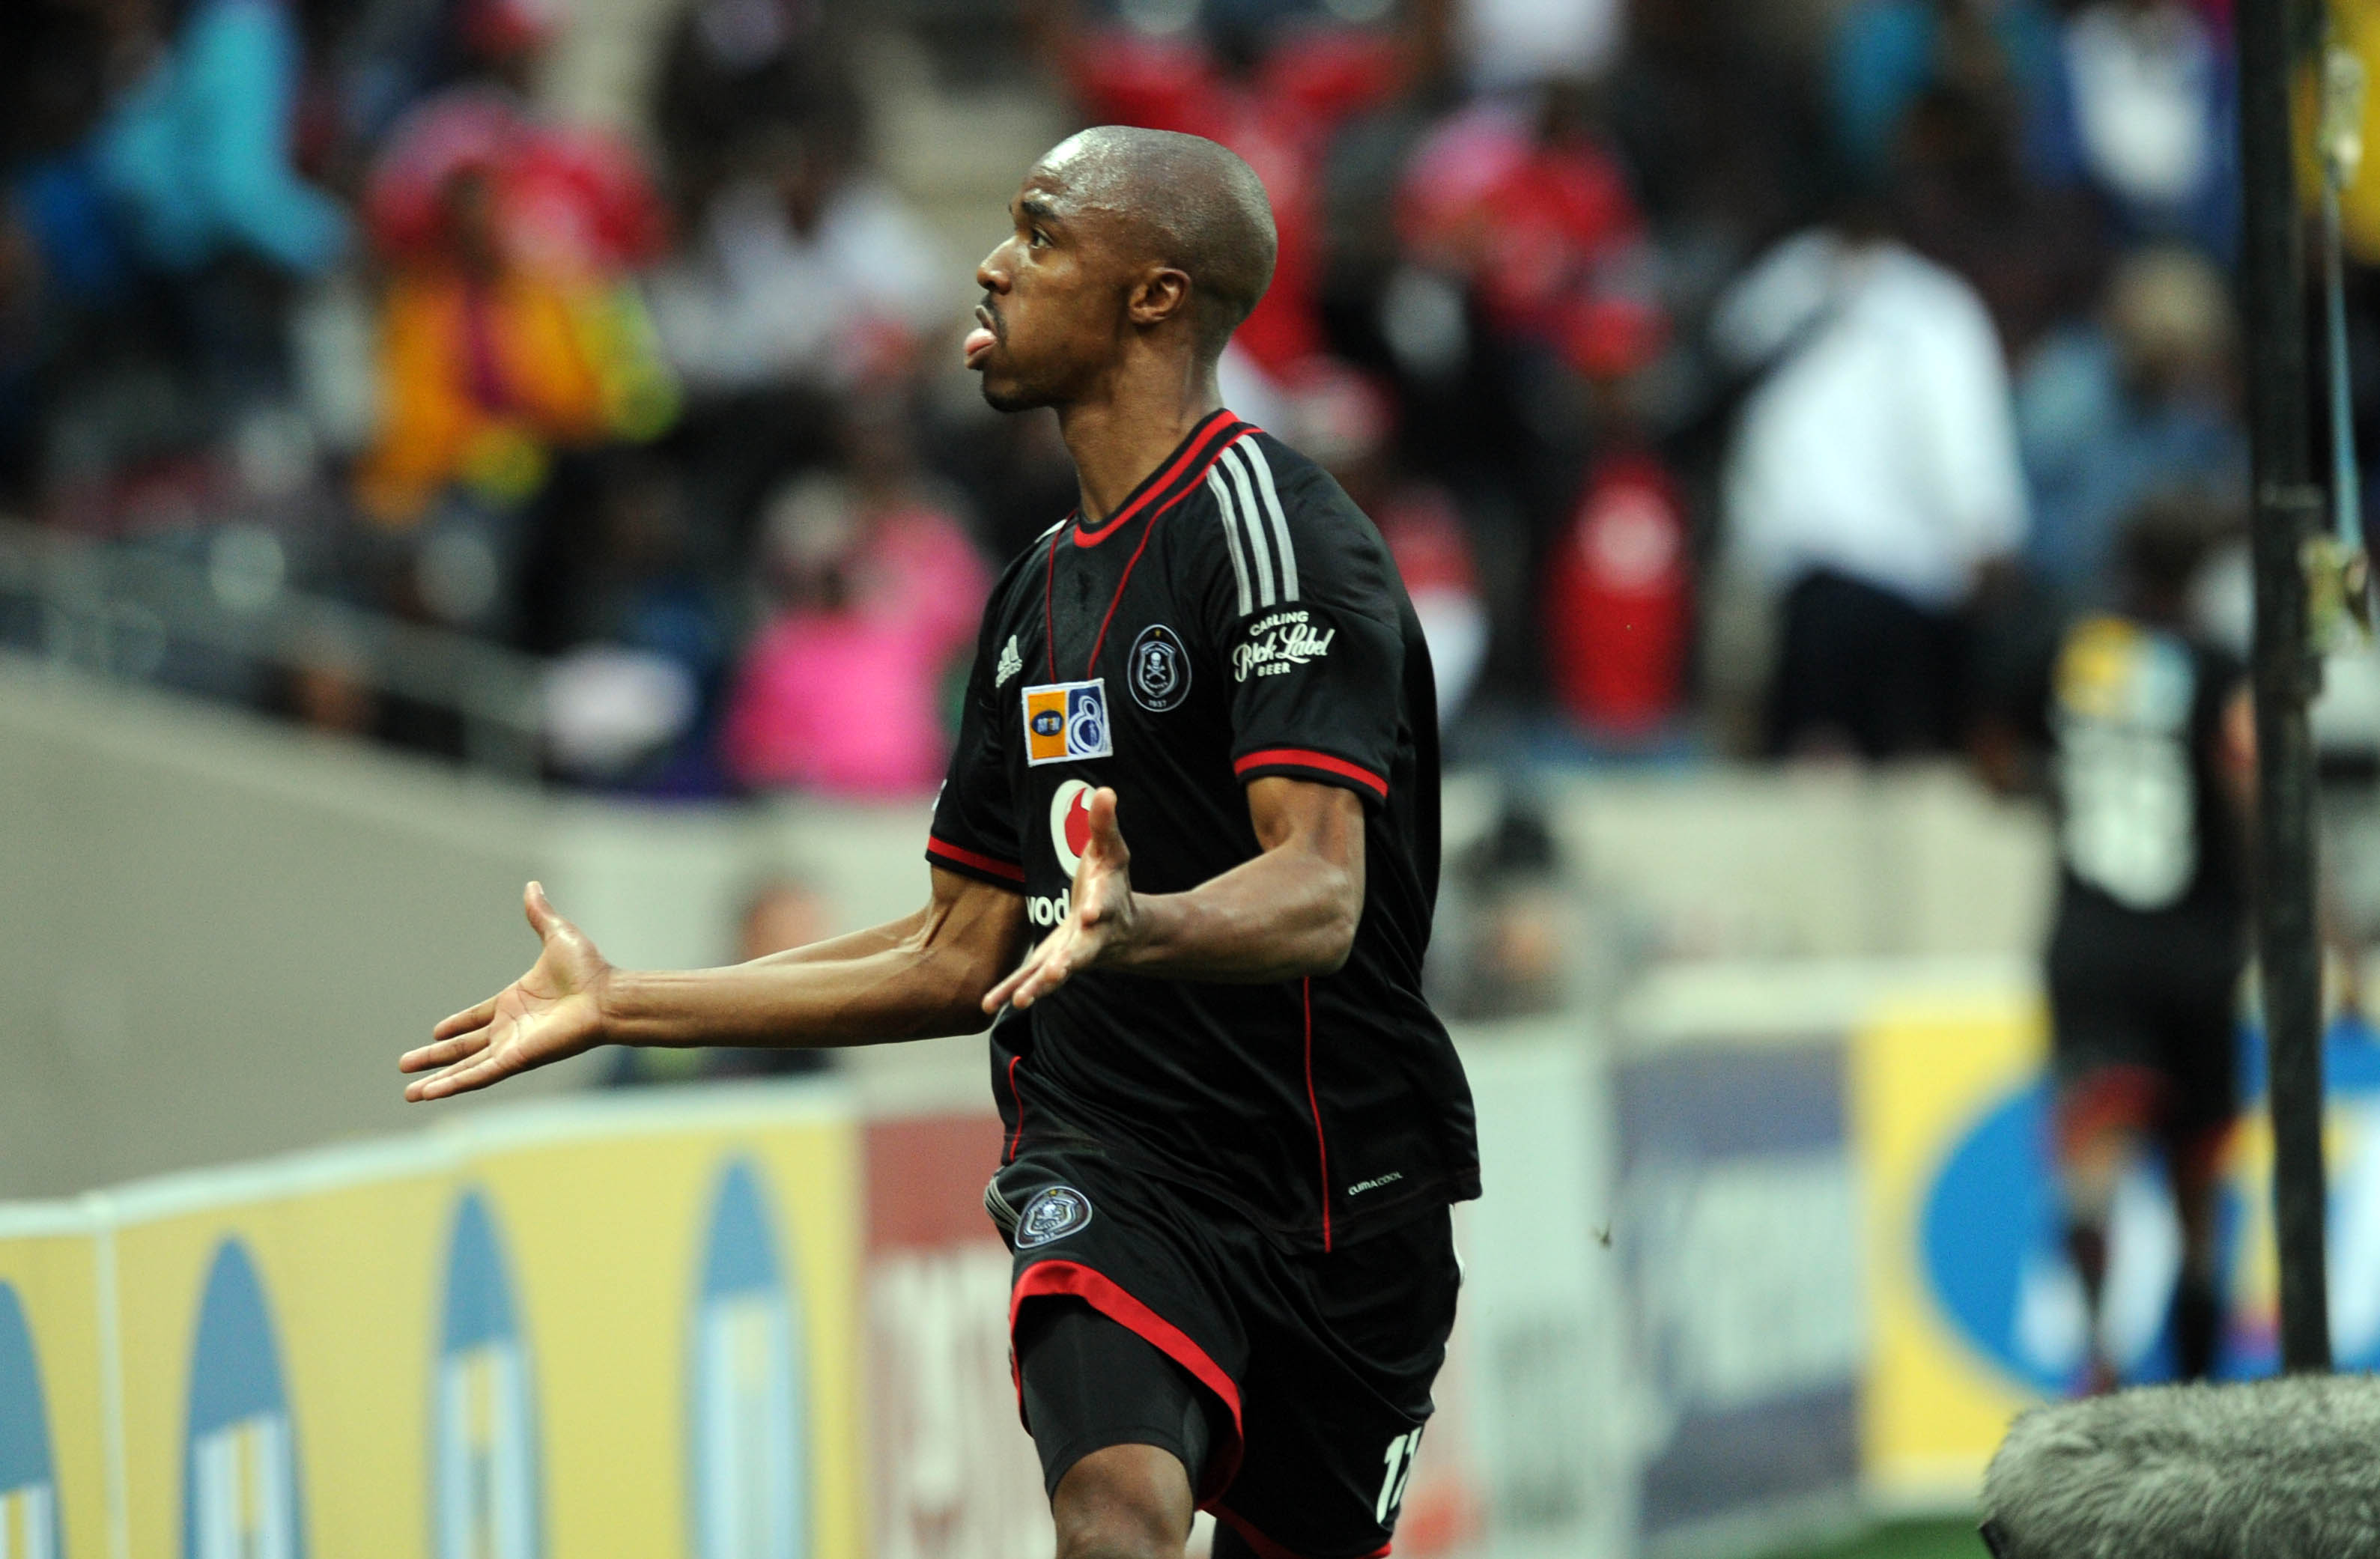 Football - 2013 MTN8 - Quarter Final - Orlando Pirates v Supersport United - Mbombela Stadium